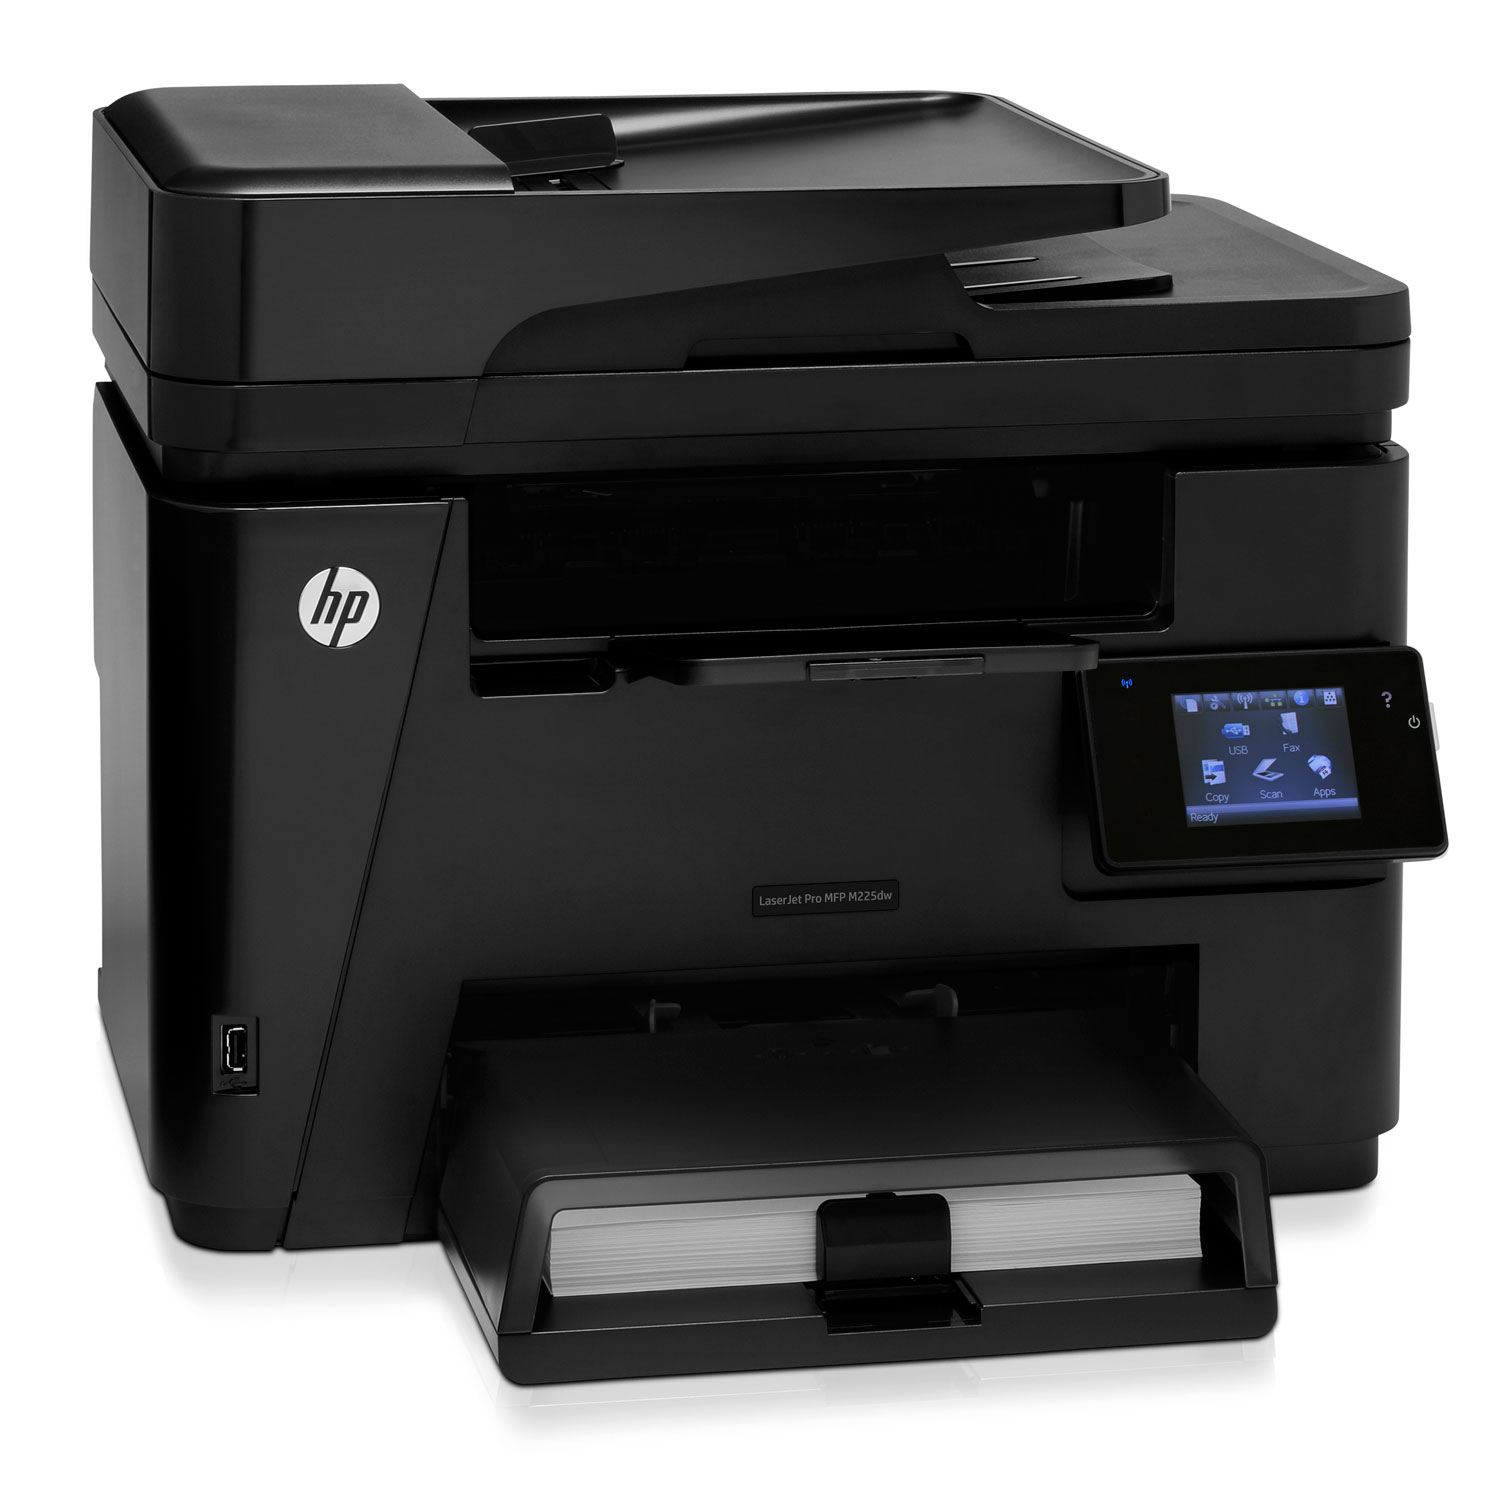 hp laserjet pro mfp m225dw imprimante multifonction hp. Black Bedroom Furniture Sets. Home Design Ideas